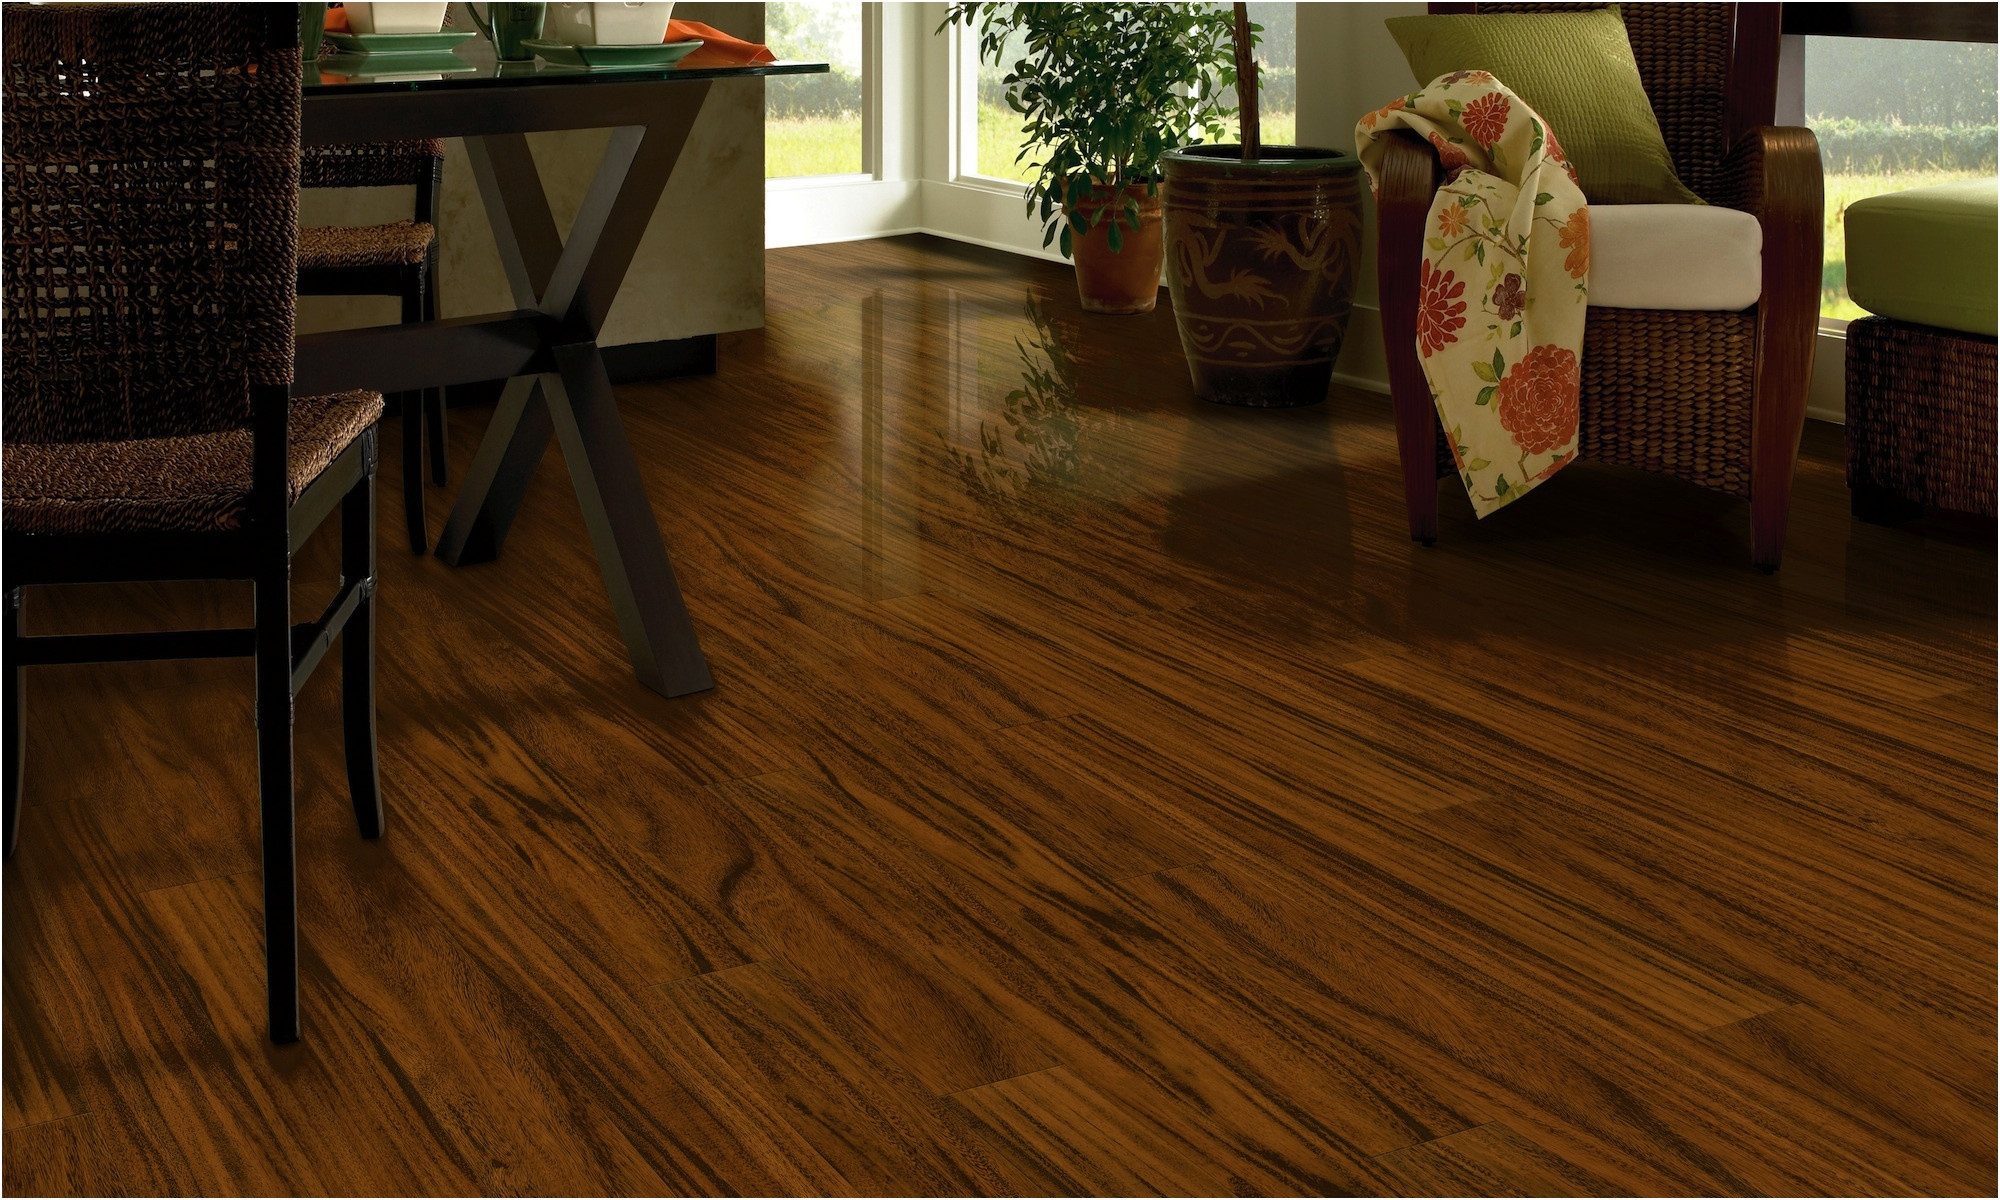 Bruce Hand Scraped Hardwood Flooring Of Best Hand Scraped Hardwood Flooring Reviews Galerie Floor Striking for Best Hand Scraped Hardwood Flooring Reviews Galerie Floor Striking Bruce Hardwood Floors S Ideas Plano Marsh